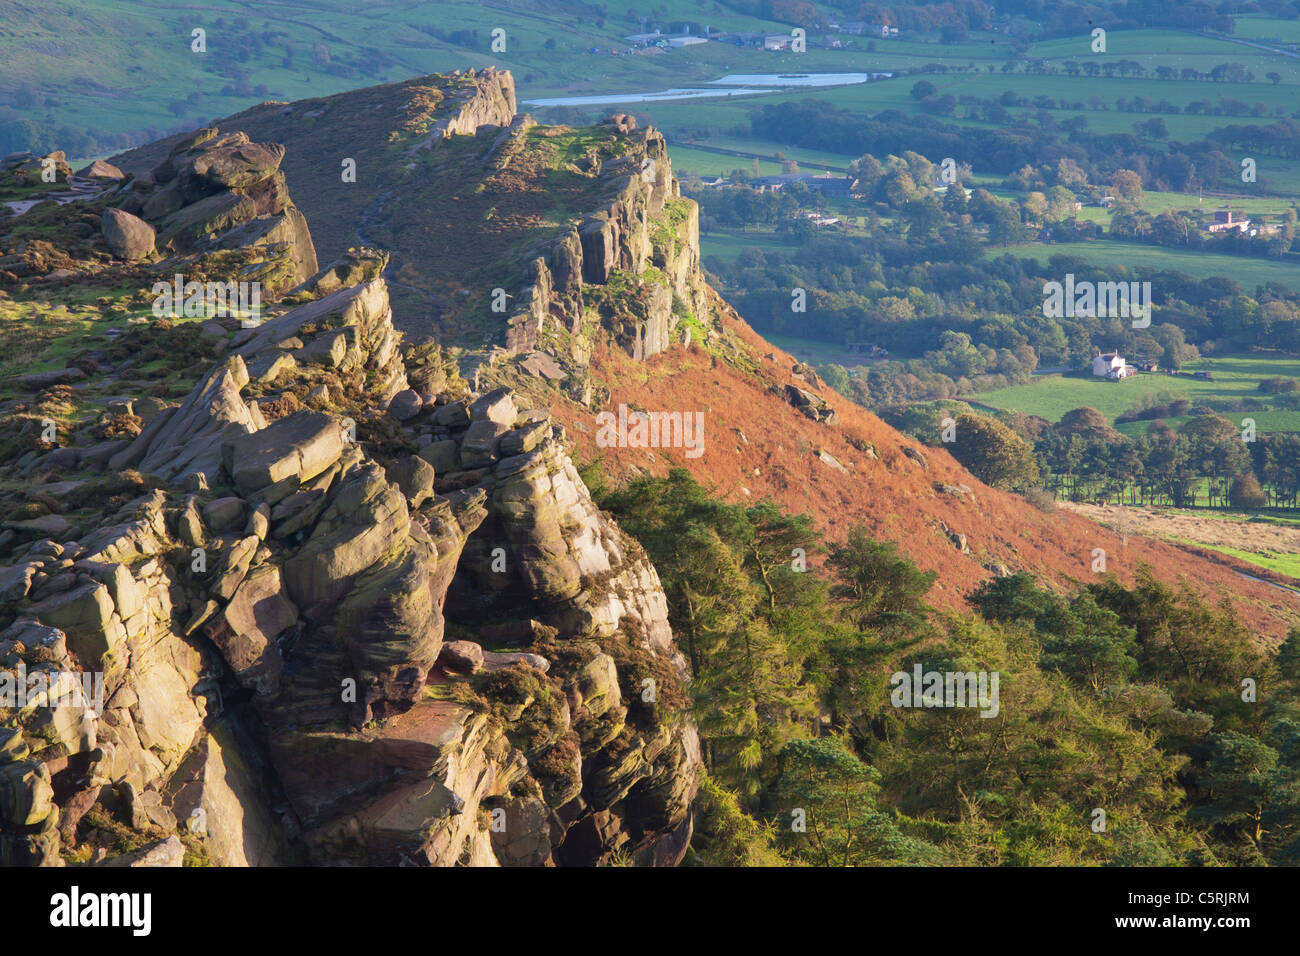 The Roaches, Staffordshire Moorlands, Peak District, England UK - Stock Image